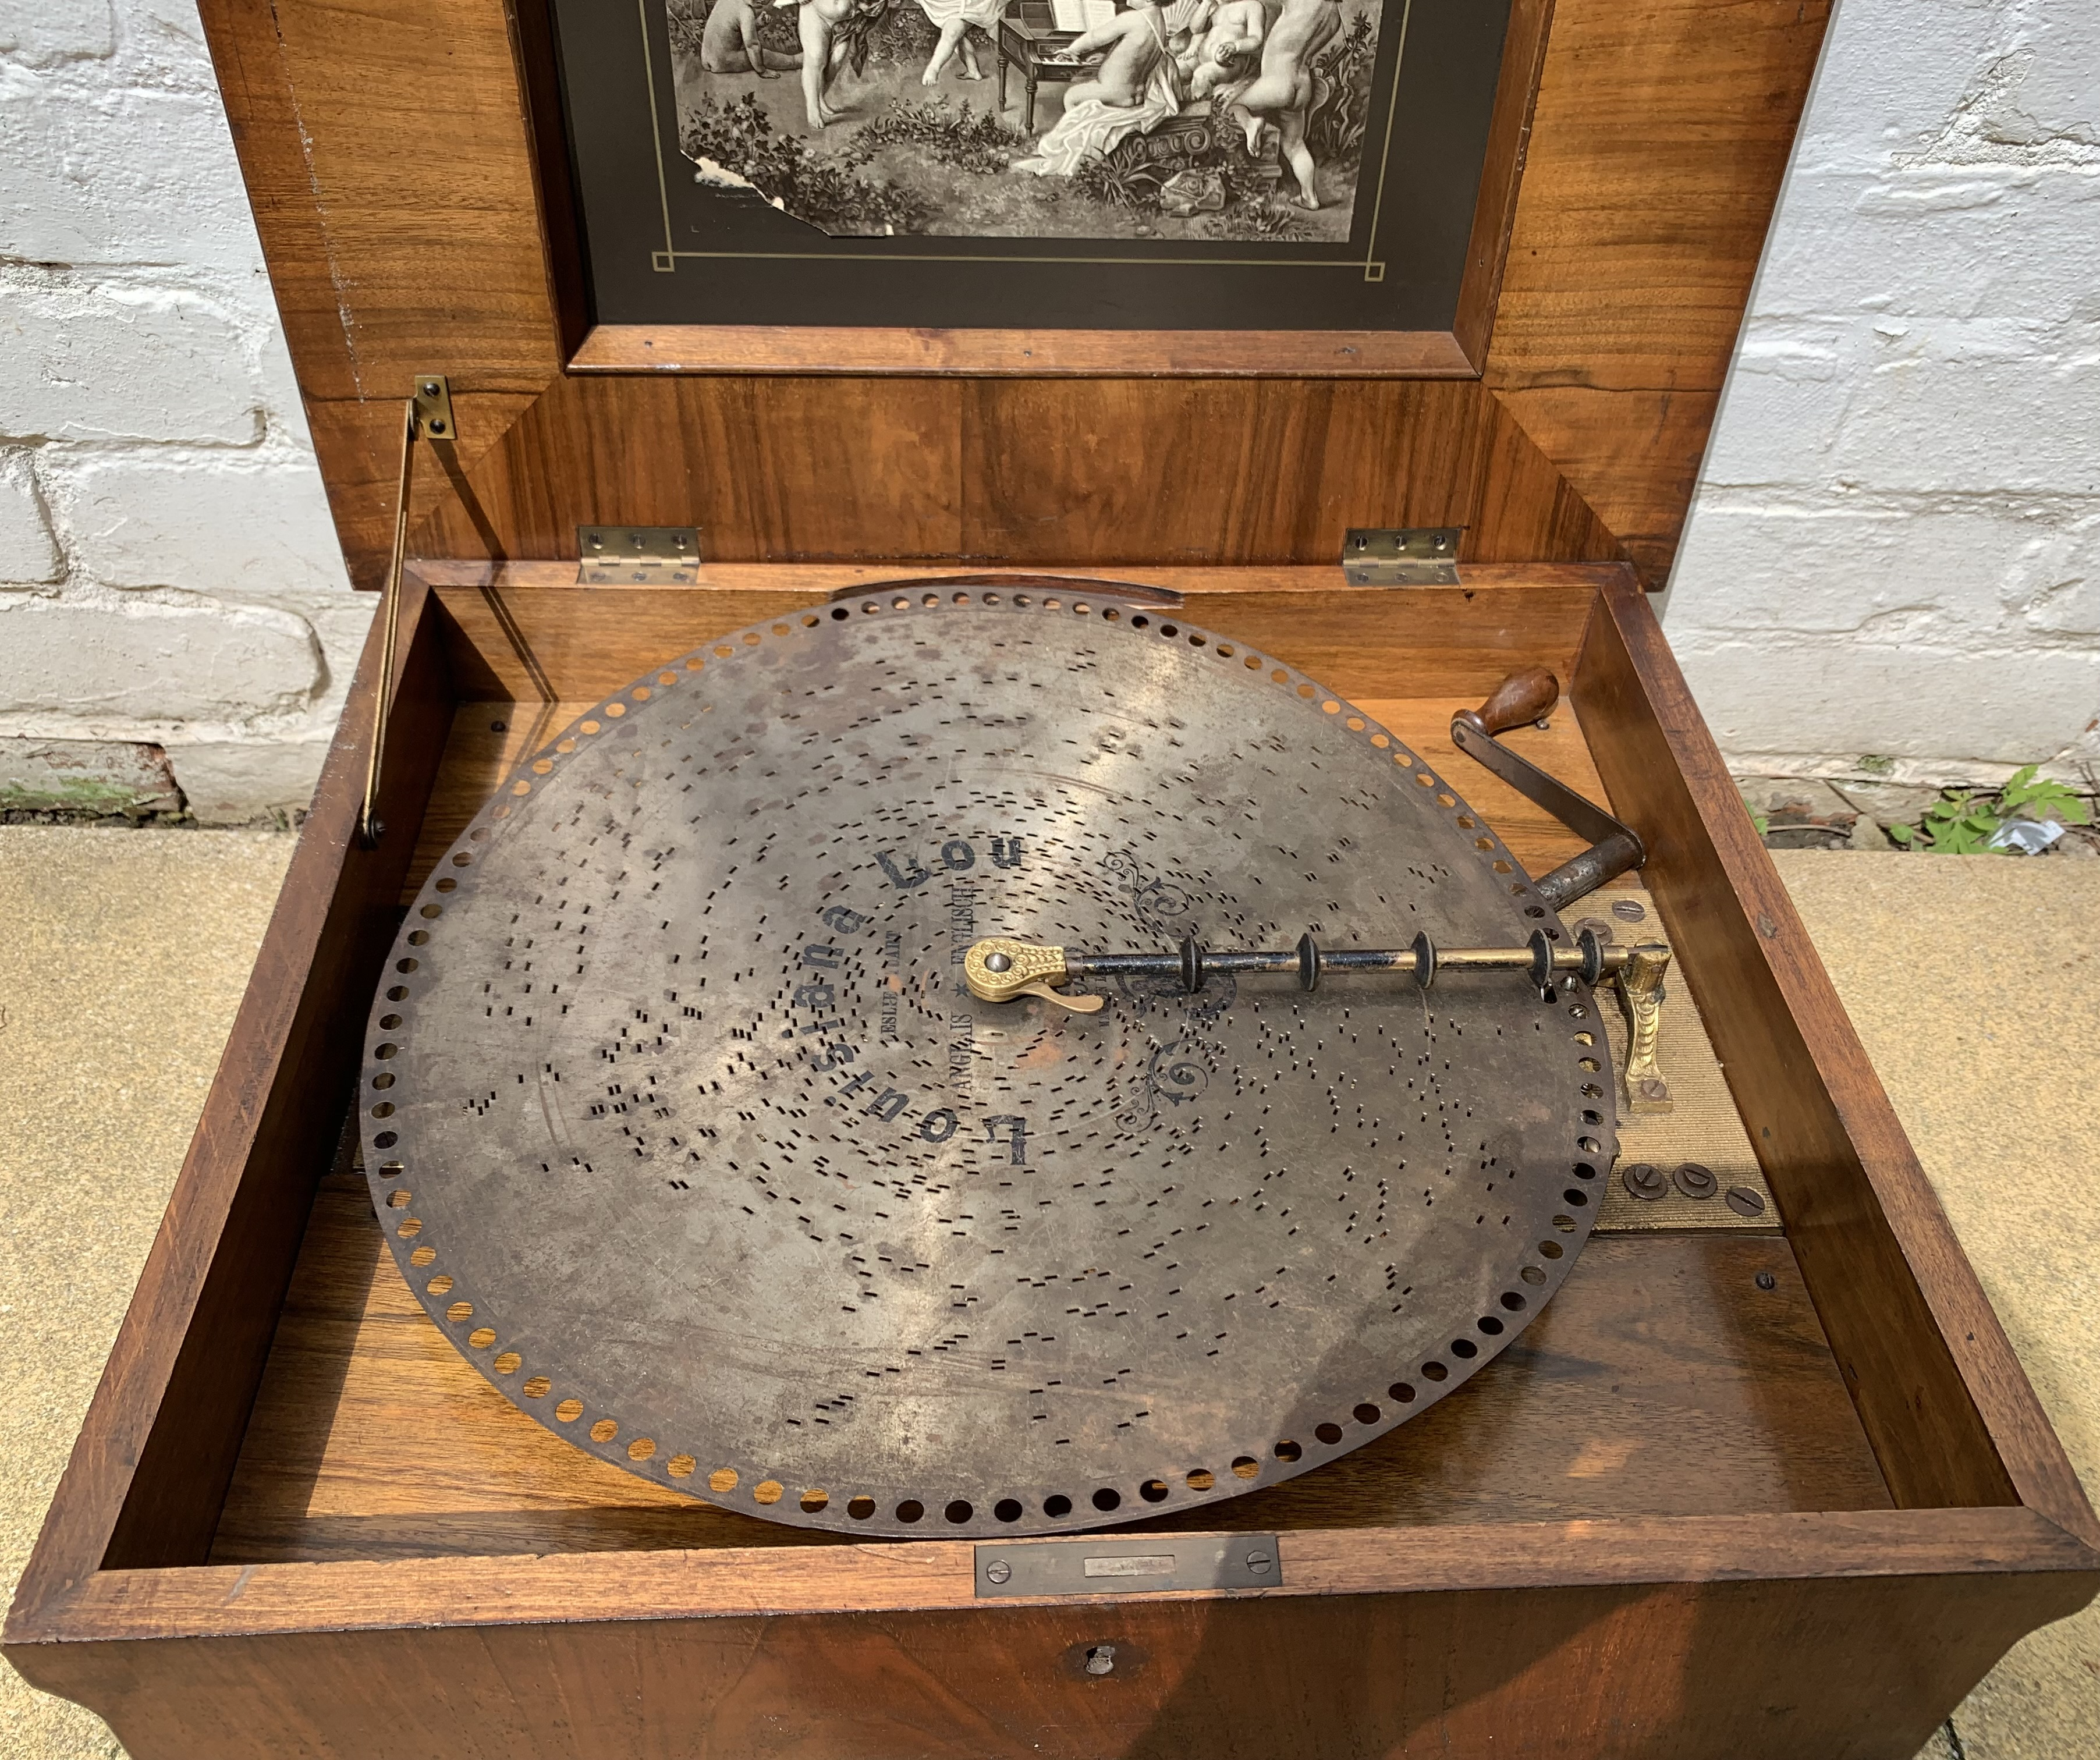 """Antique Polyphon music box in inlaid box, 21"""" long x 18"""" wide with 8 discs. Working - Image 5 of 15"""